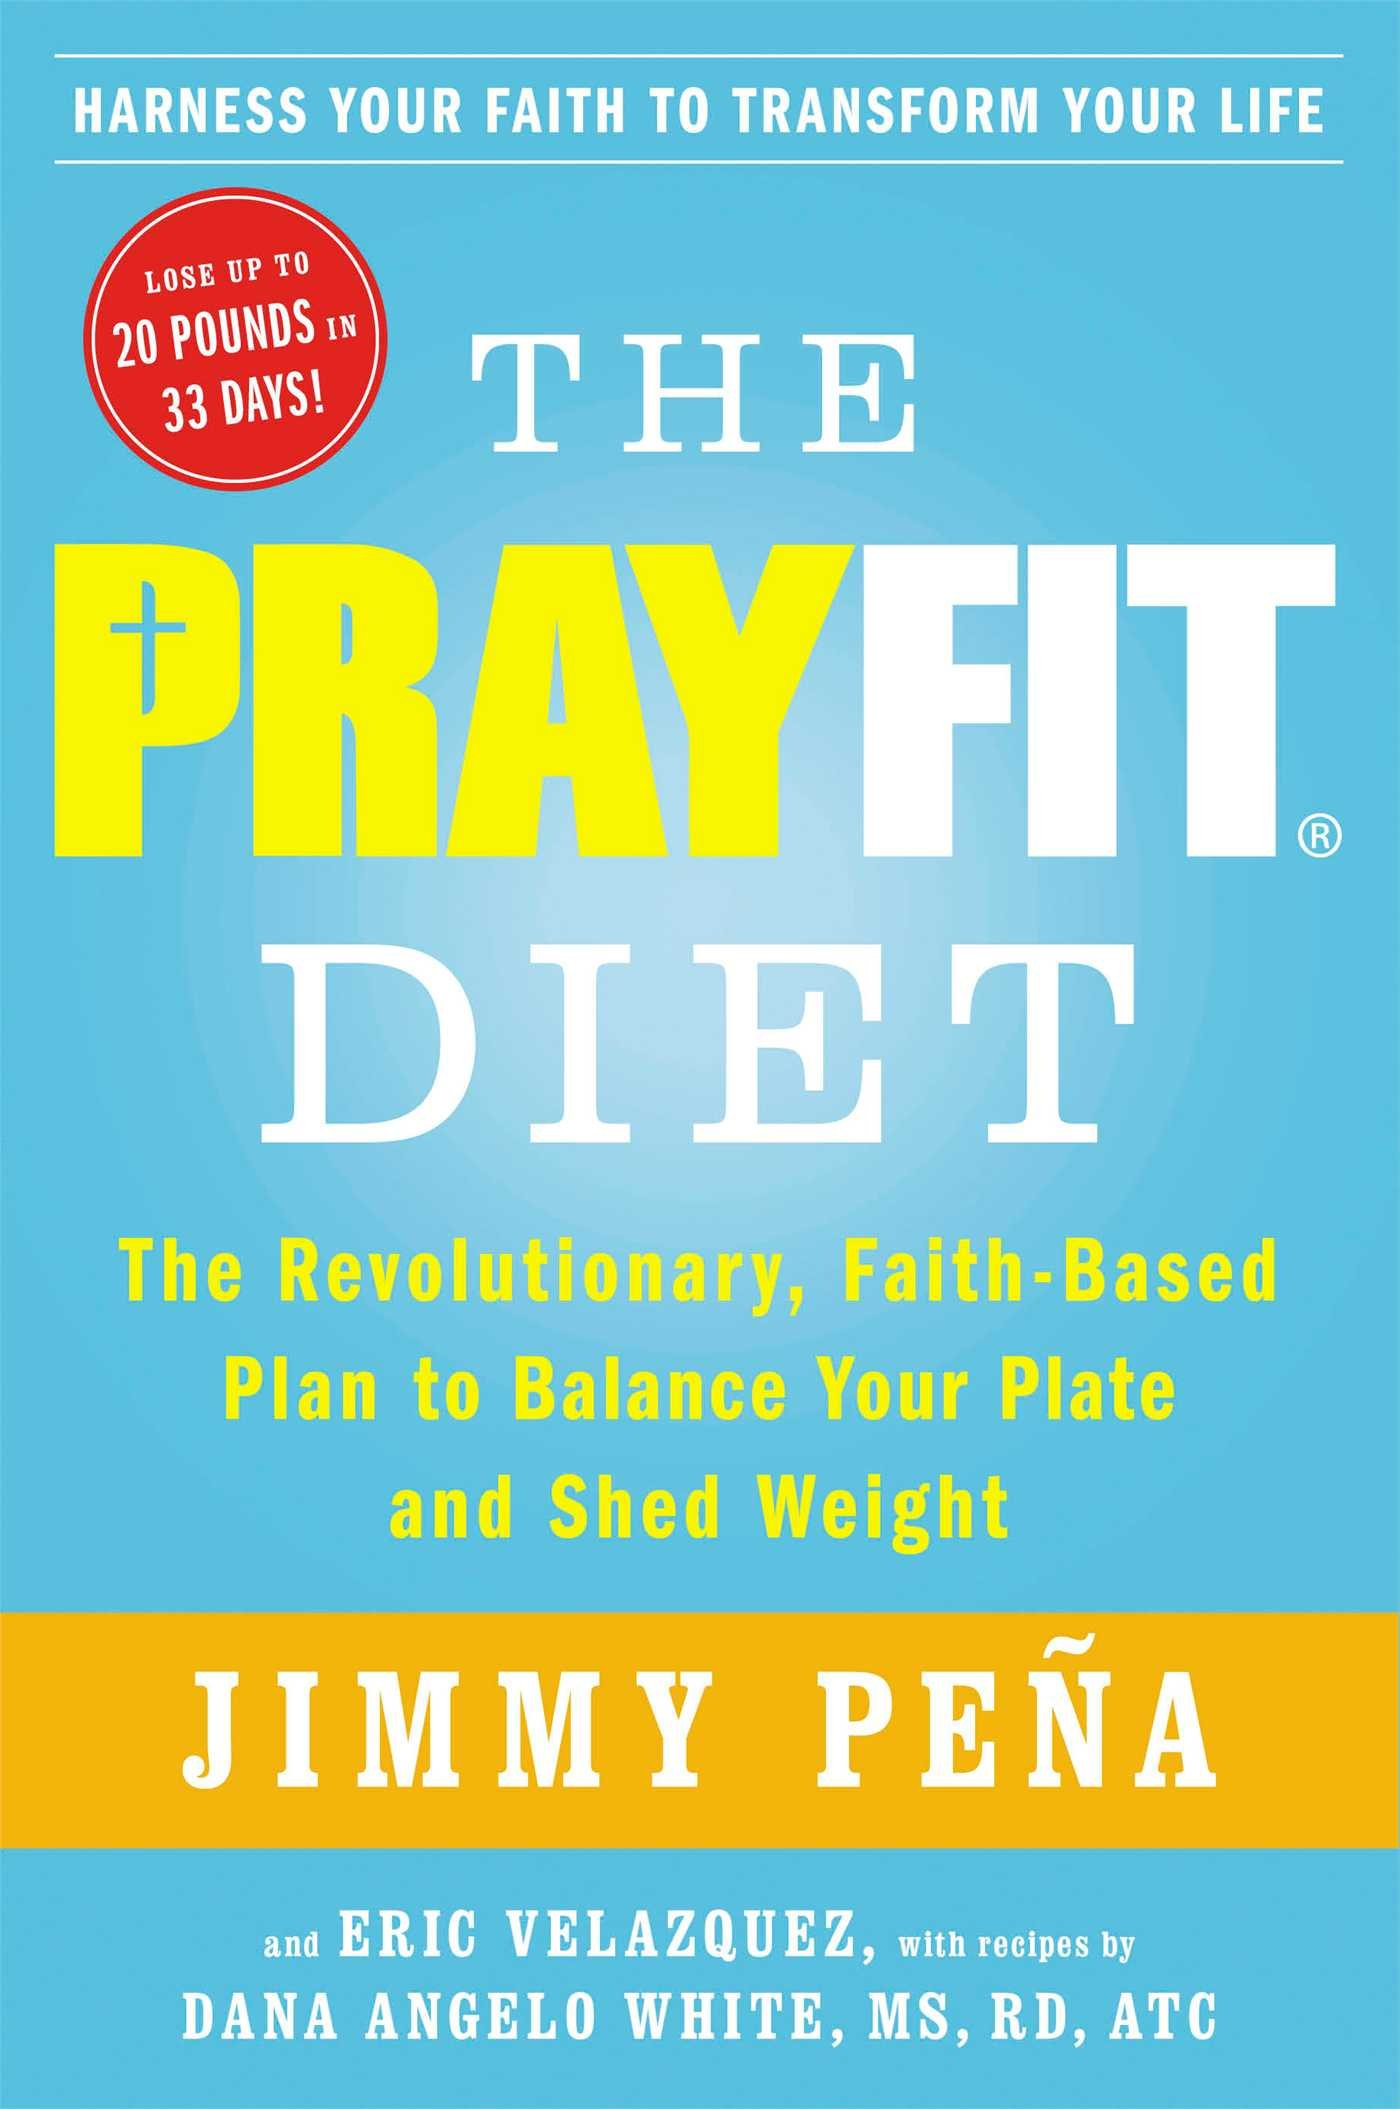 The prayfit diet the revolutionary faith based plan to balance the prayfit diet the revolutionary faith based plan to balance your plate and shed weight jimmy pea eric velazquez dana angelo white 9781476714721 nvjuhfo Images